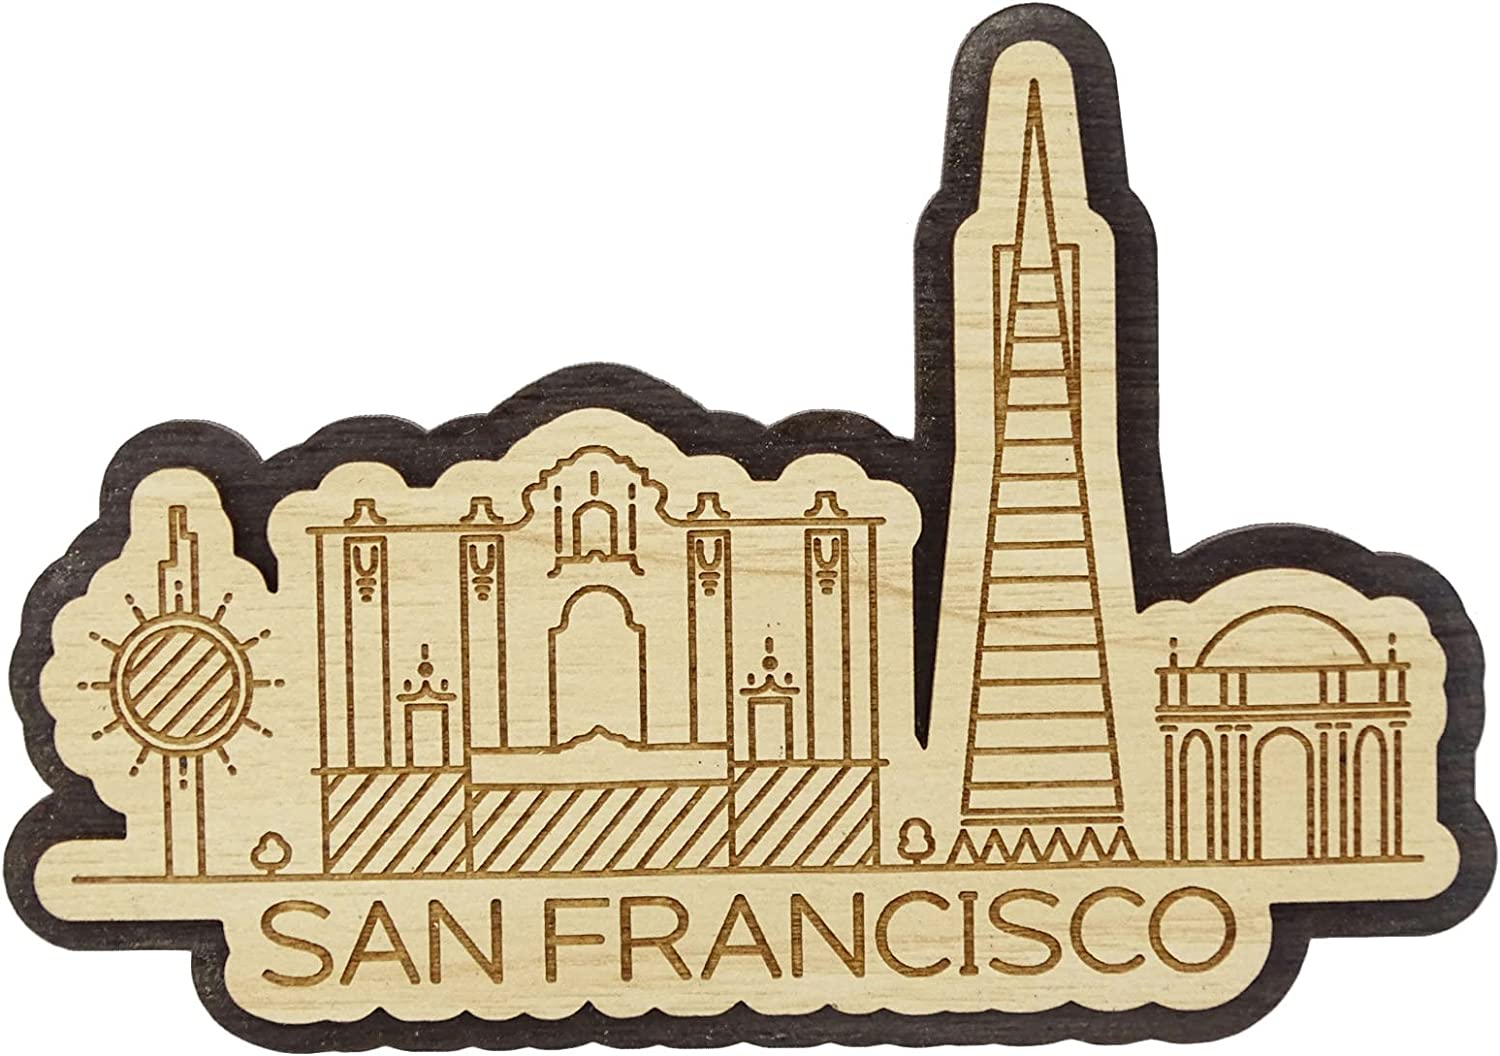 Printtoo Engraved Wooden California San Francisco City Souvenir Custom Fridge Magnet